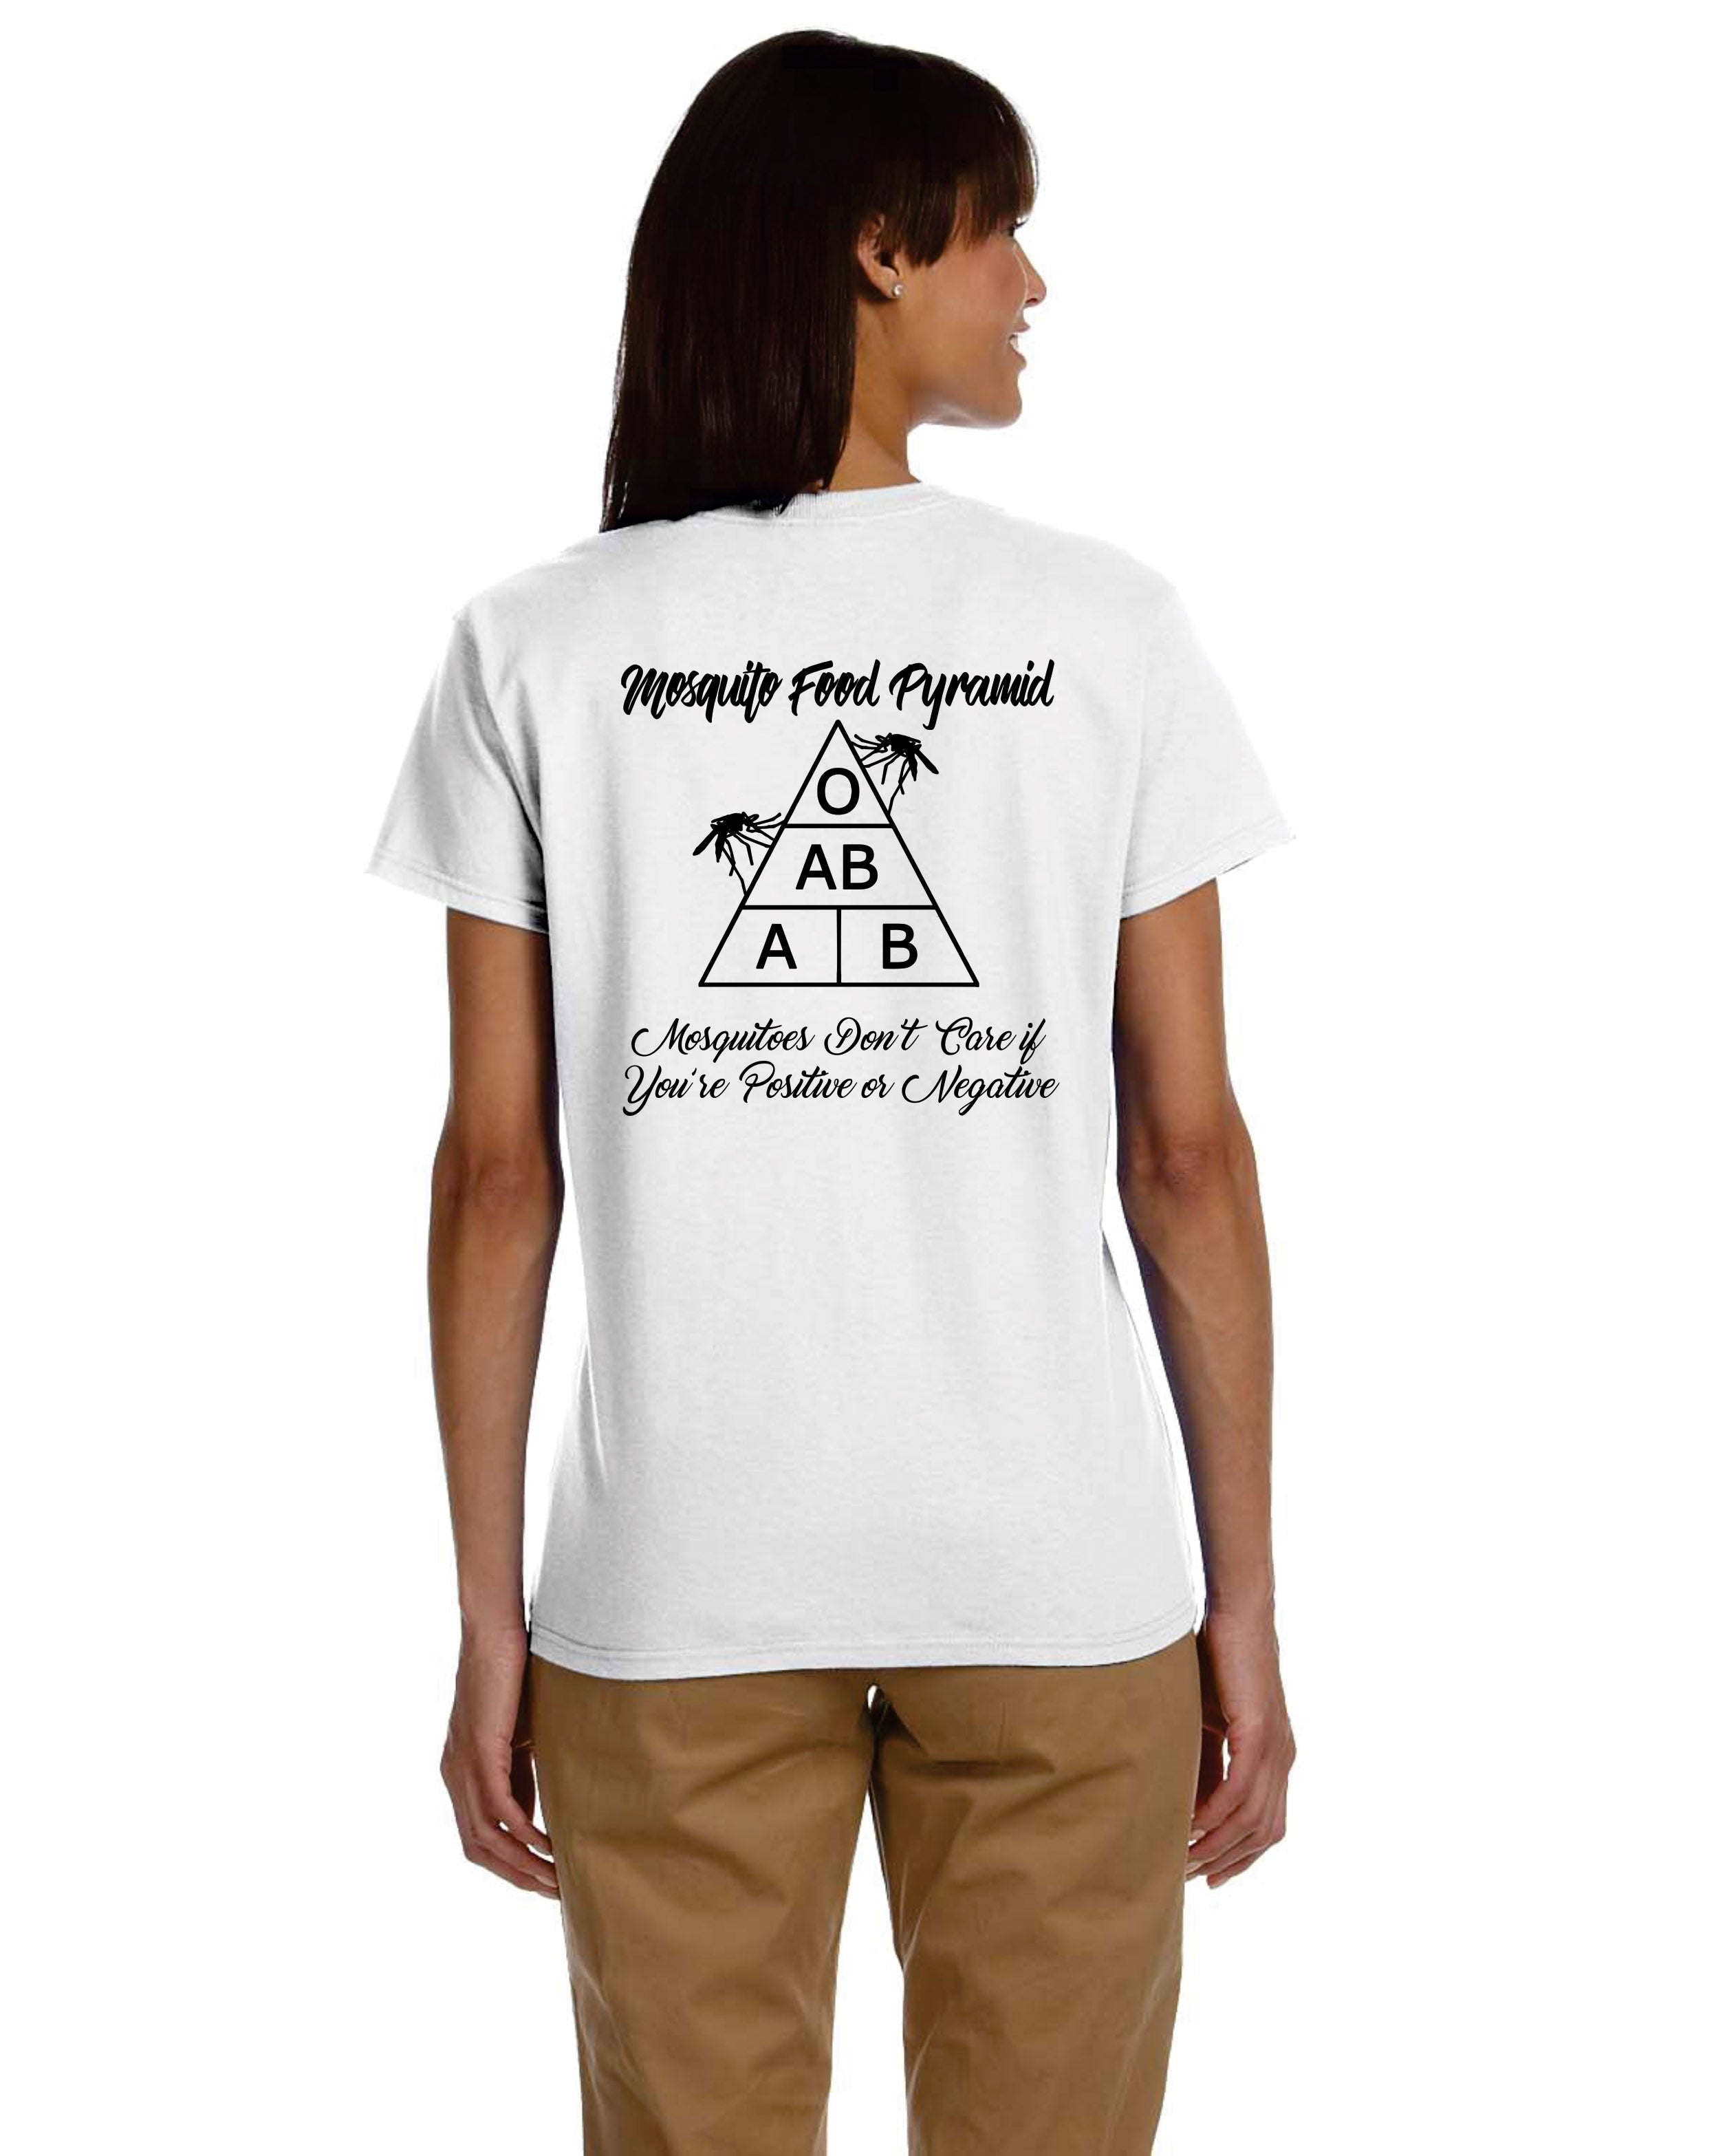 Ladies' Mosquito Food Pyramid Novel-Tee Make a statement this summer in our Gildan Ultra 100% Cotton Ladies' Tee (Sport Gray 90/10 Cotton/Poly blend) Enjoy the comfort and fun in our Ladies' Mosquito Food Pyramid Novel-Tee **Order true to size for a formed fit***Order up one size for a looser fit**